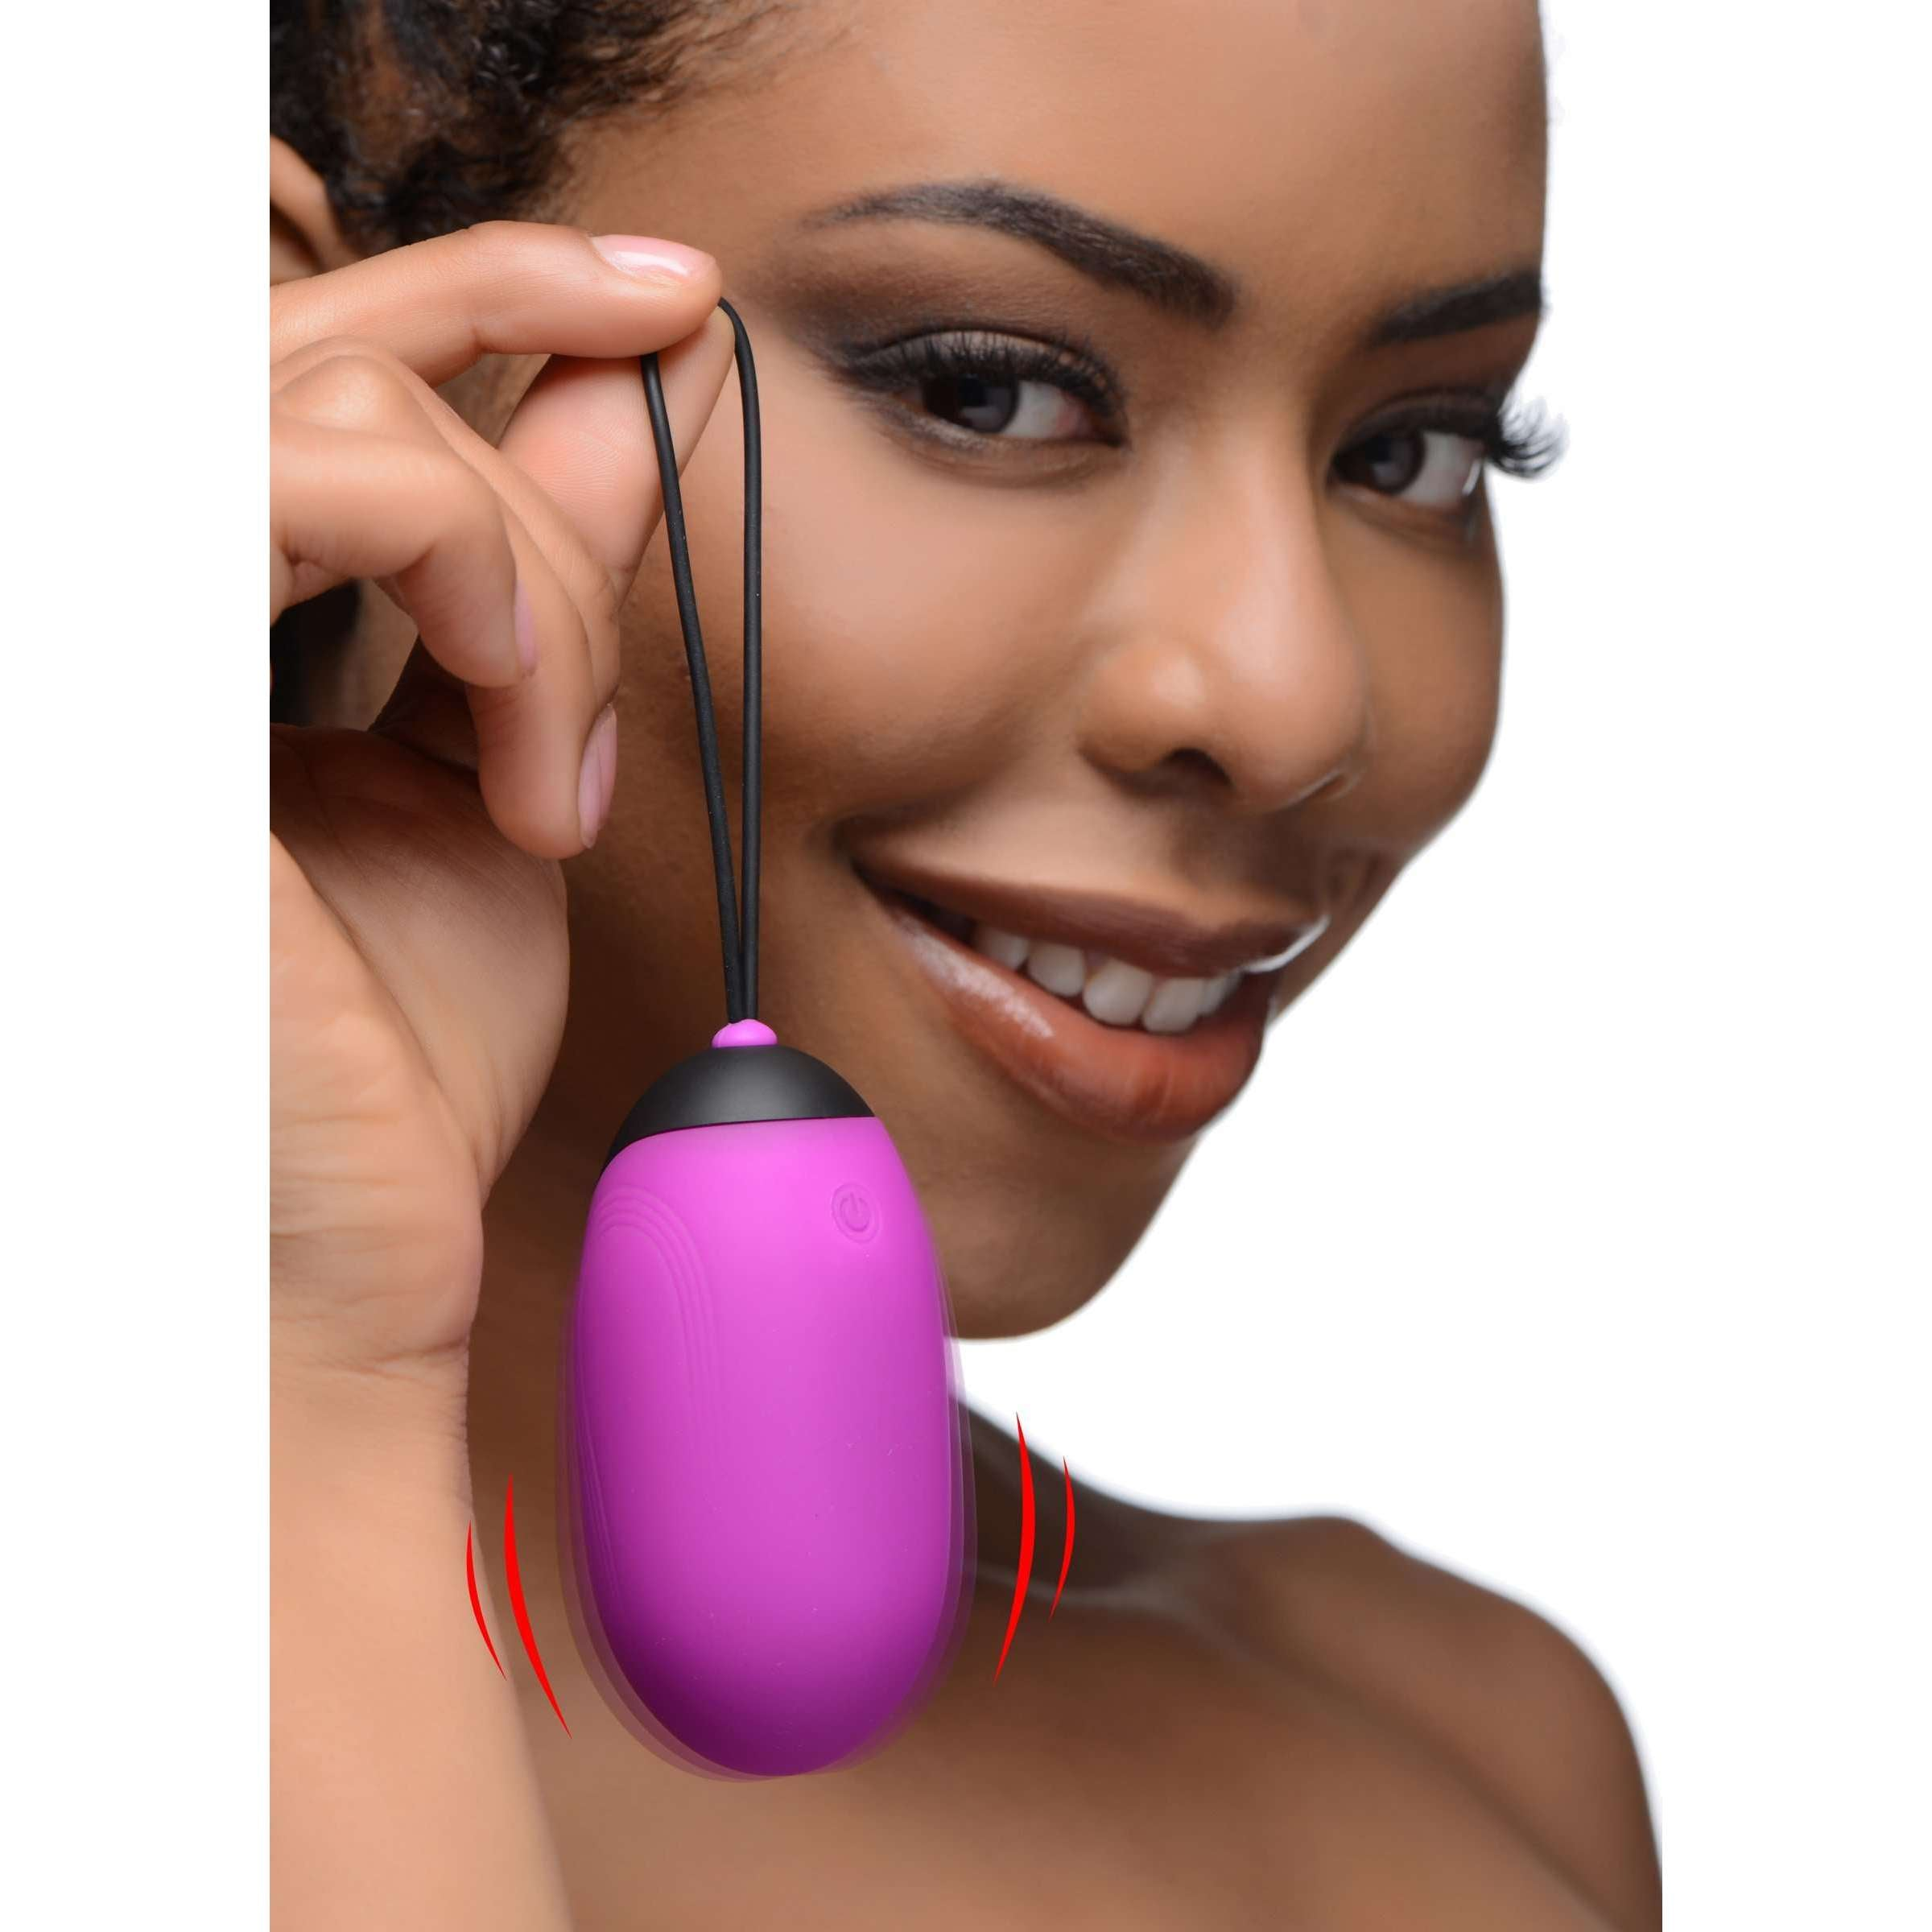 XL Silicone Vibrating Egg - Purple